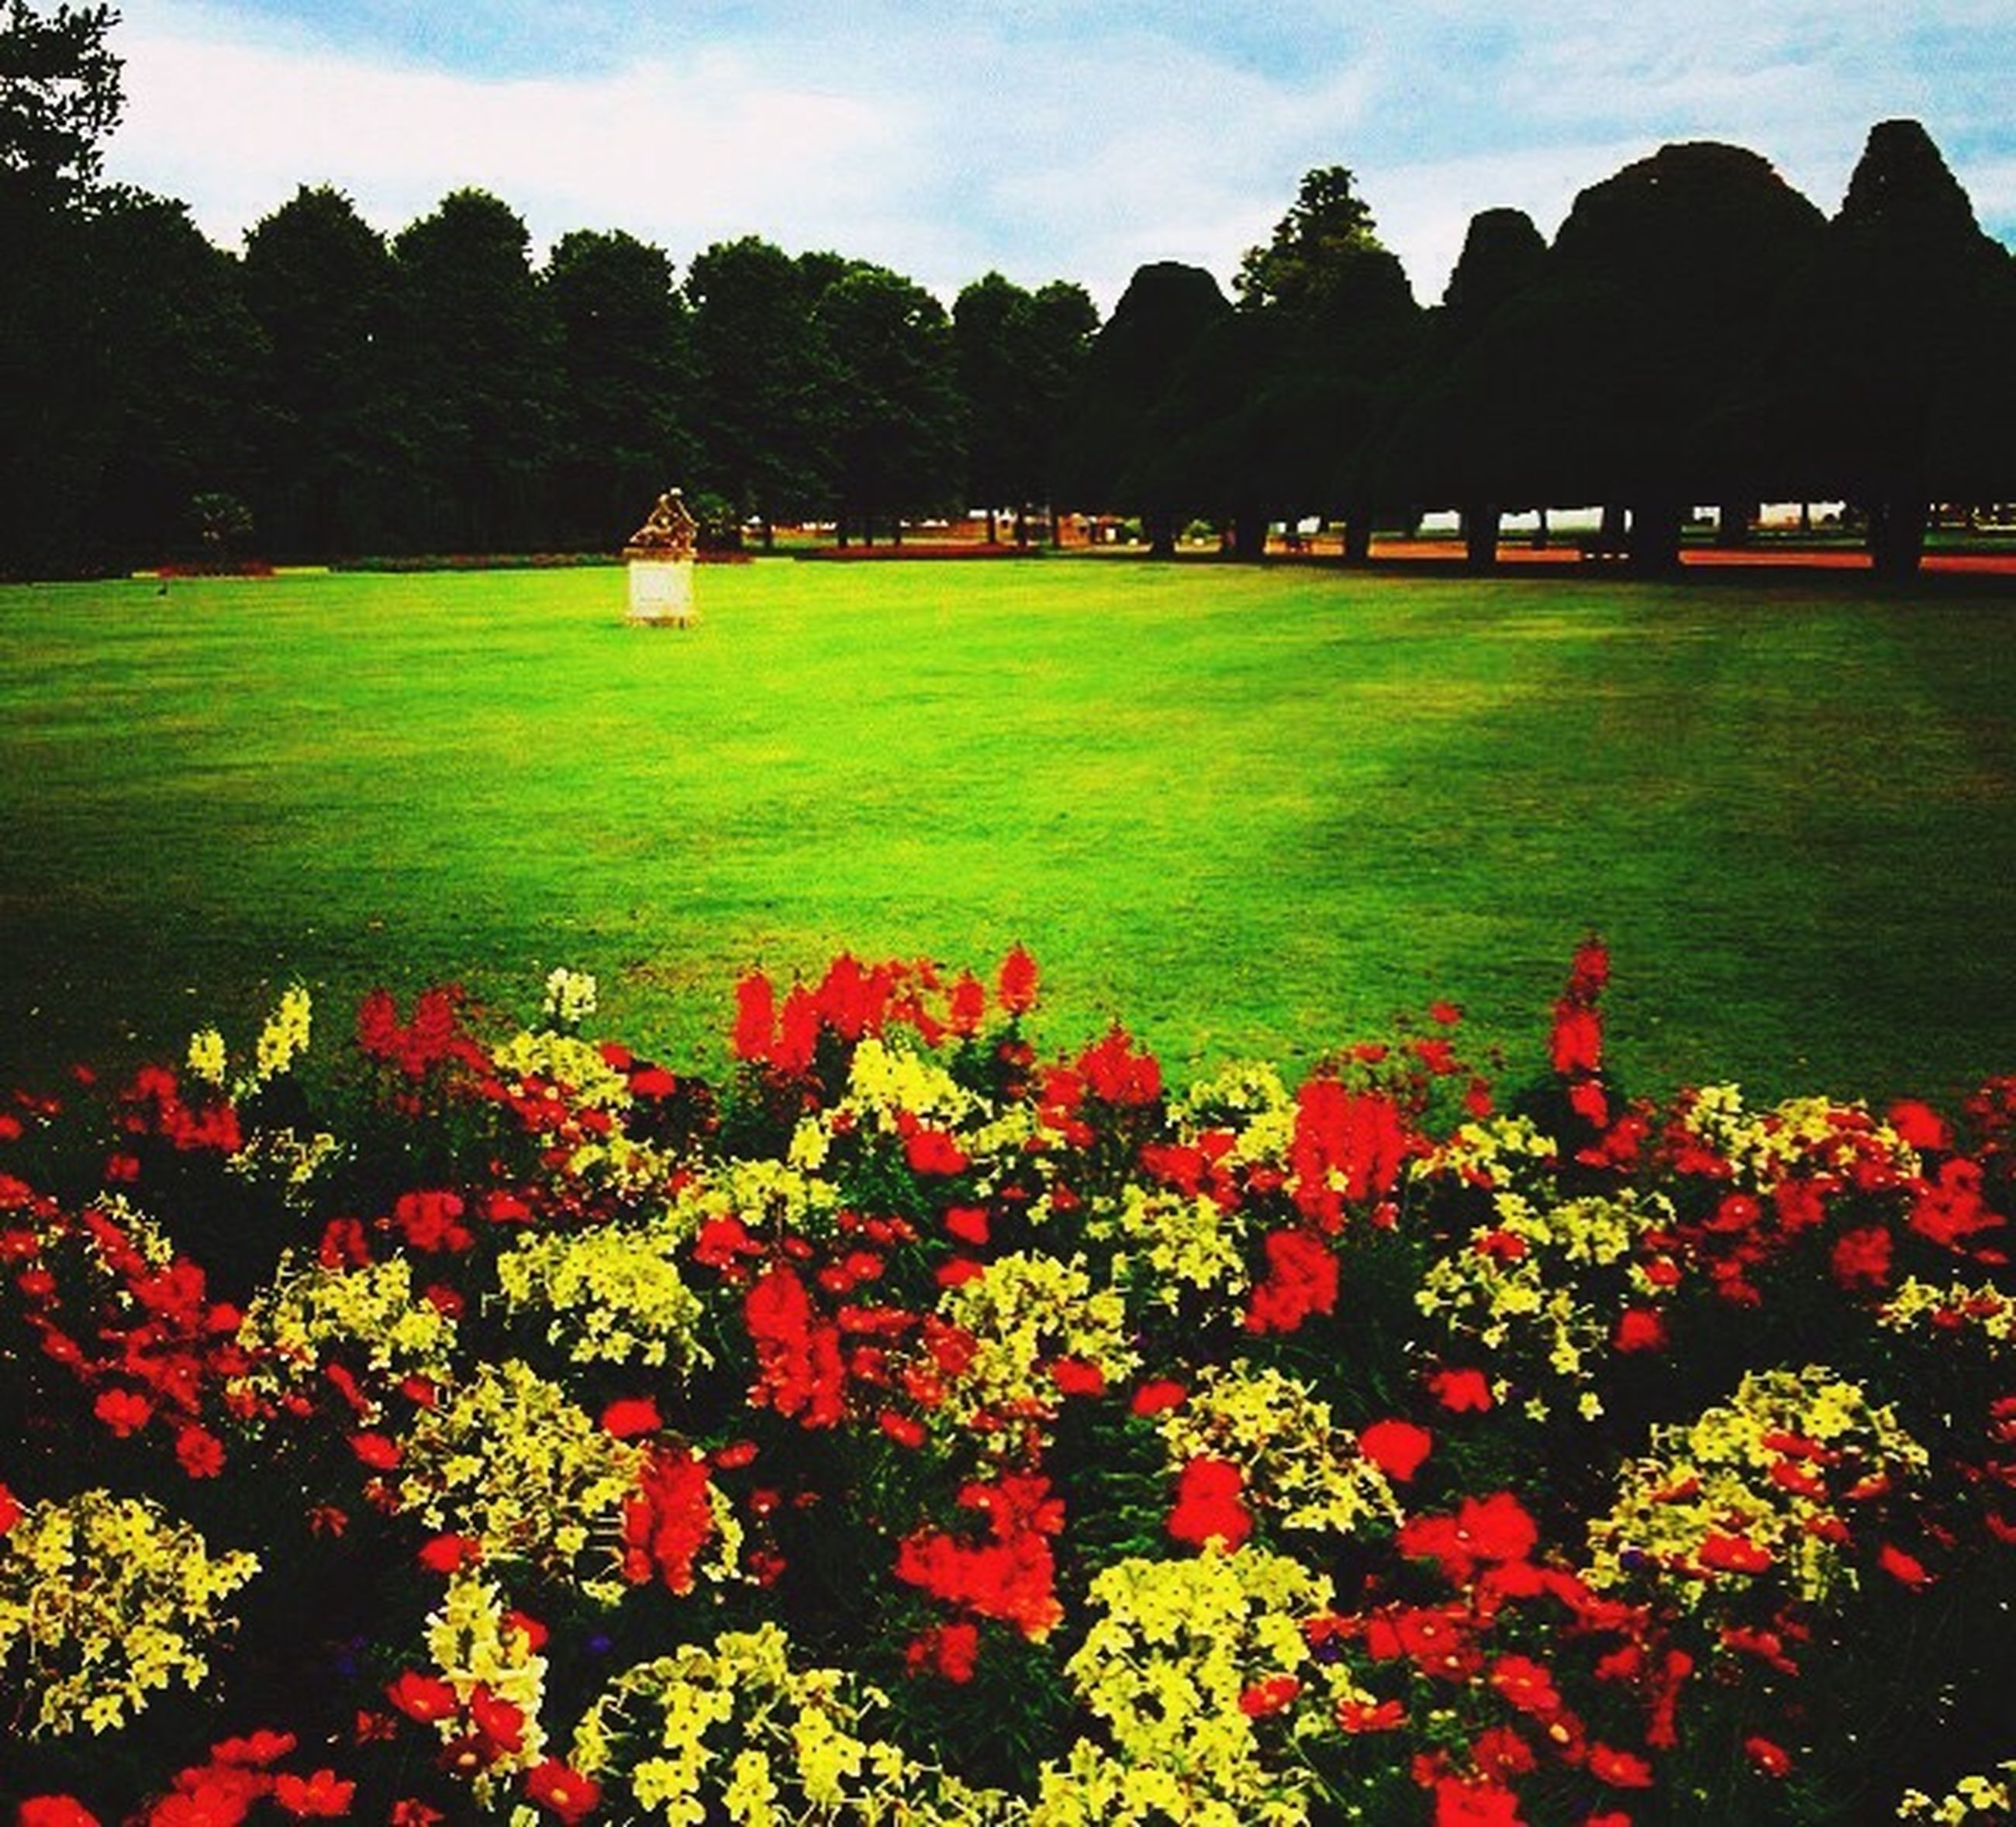 flower, beauty in nature, growth, field, sky, tree, grass, nature, landscape, tranquility, green color, red, tranquil scene, scenics, plant, freshness, park - man made space, built structure, fragility, lawn